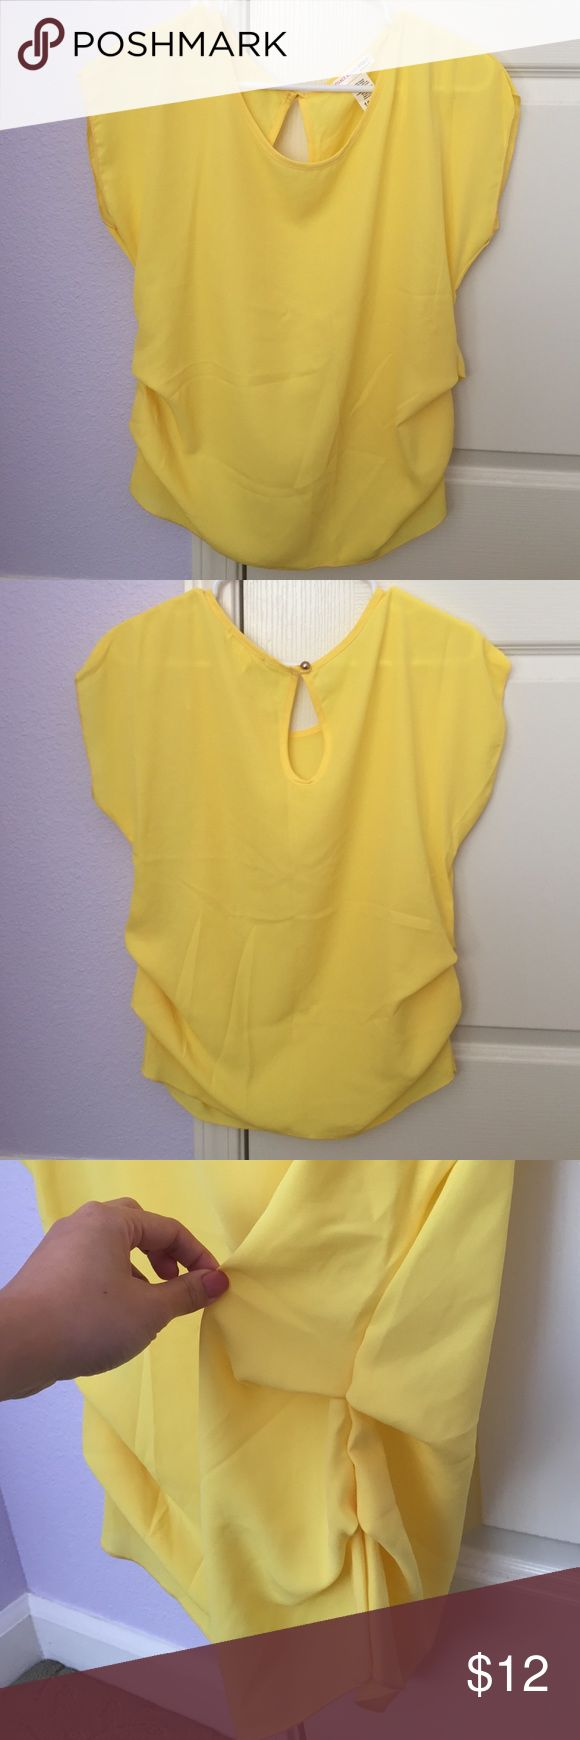 Agaci Yellow Short Sleeve Keyhole Top NWOT. Vibrant yellow short sleeve top from Agaci with ruched detail on the sides and keyhole closure in the back. Size S. Lightweight sheer material. Sorry, no trades or Paypal transactions. a'gaci Tops